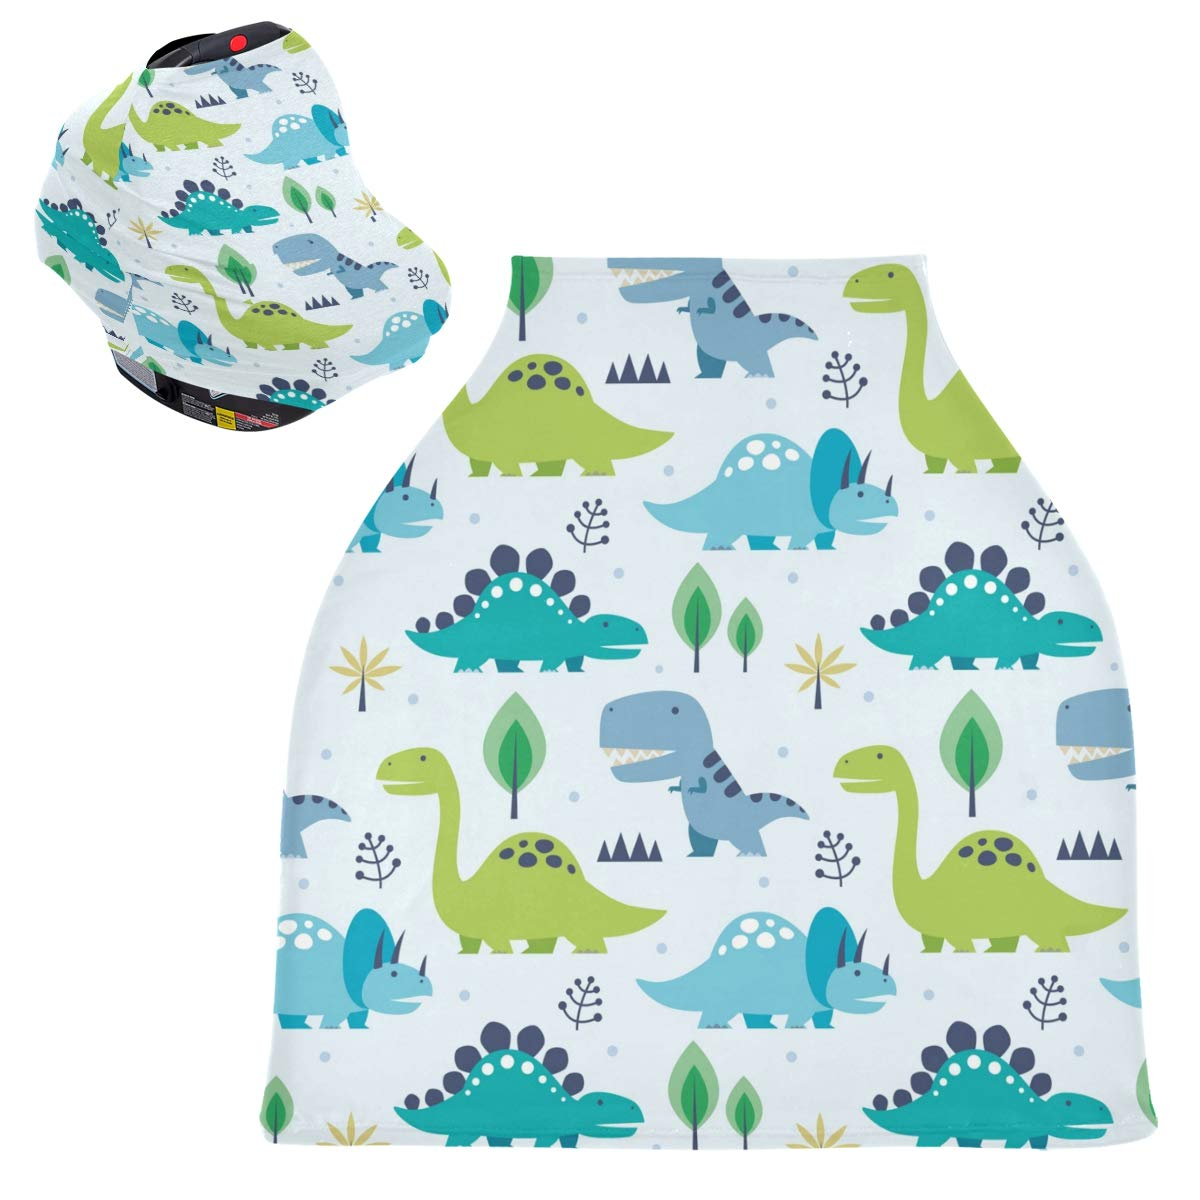 Baby Carseat Cover Canopy Breastfeeding Cover - Dinosaurs Nursing Cover Blanket Breathable Infant Stroller Cover Baby Shower Gifts for Boy&Girl